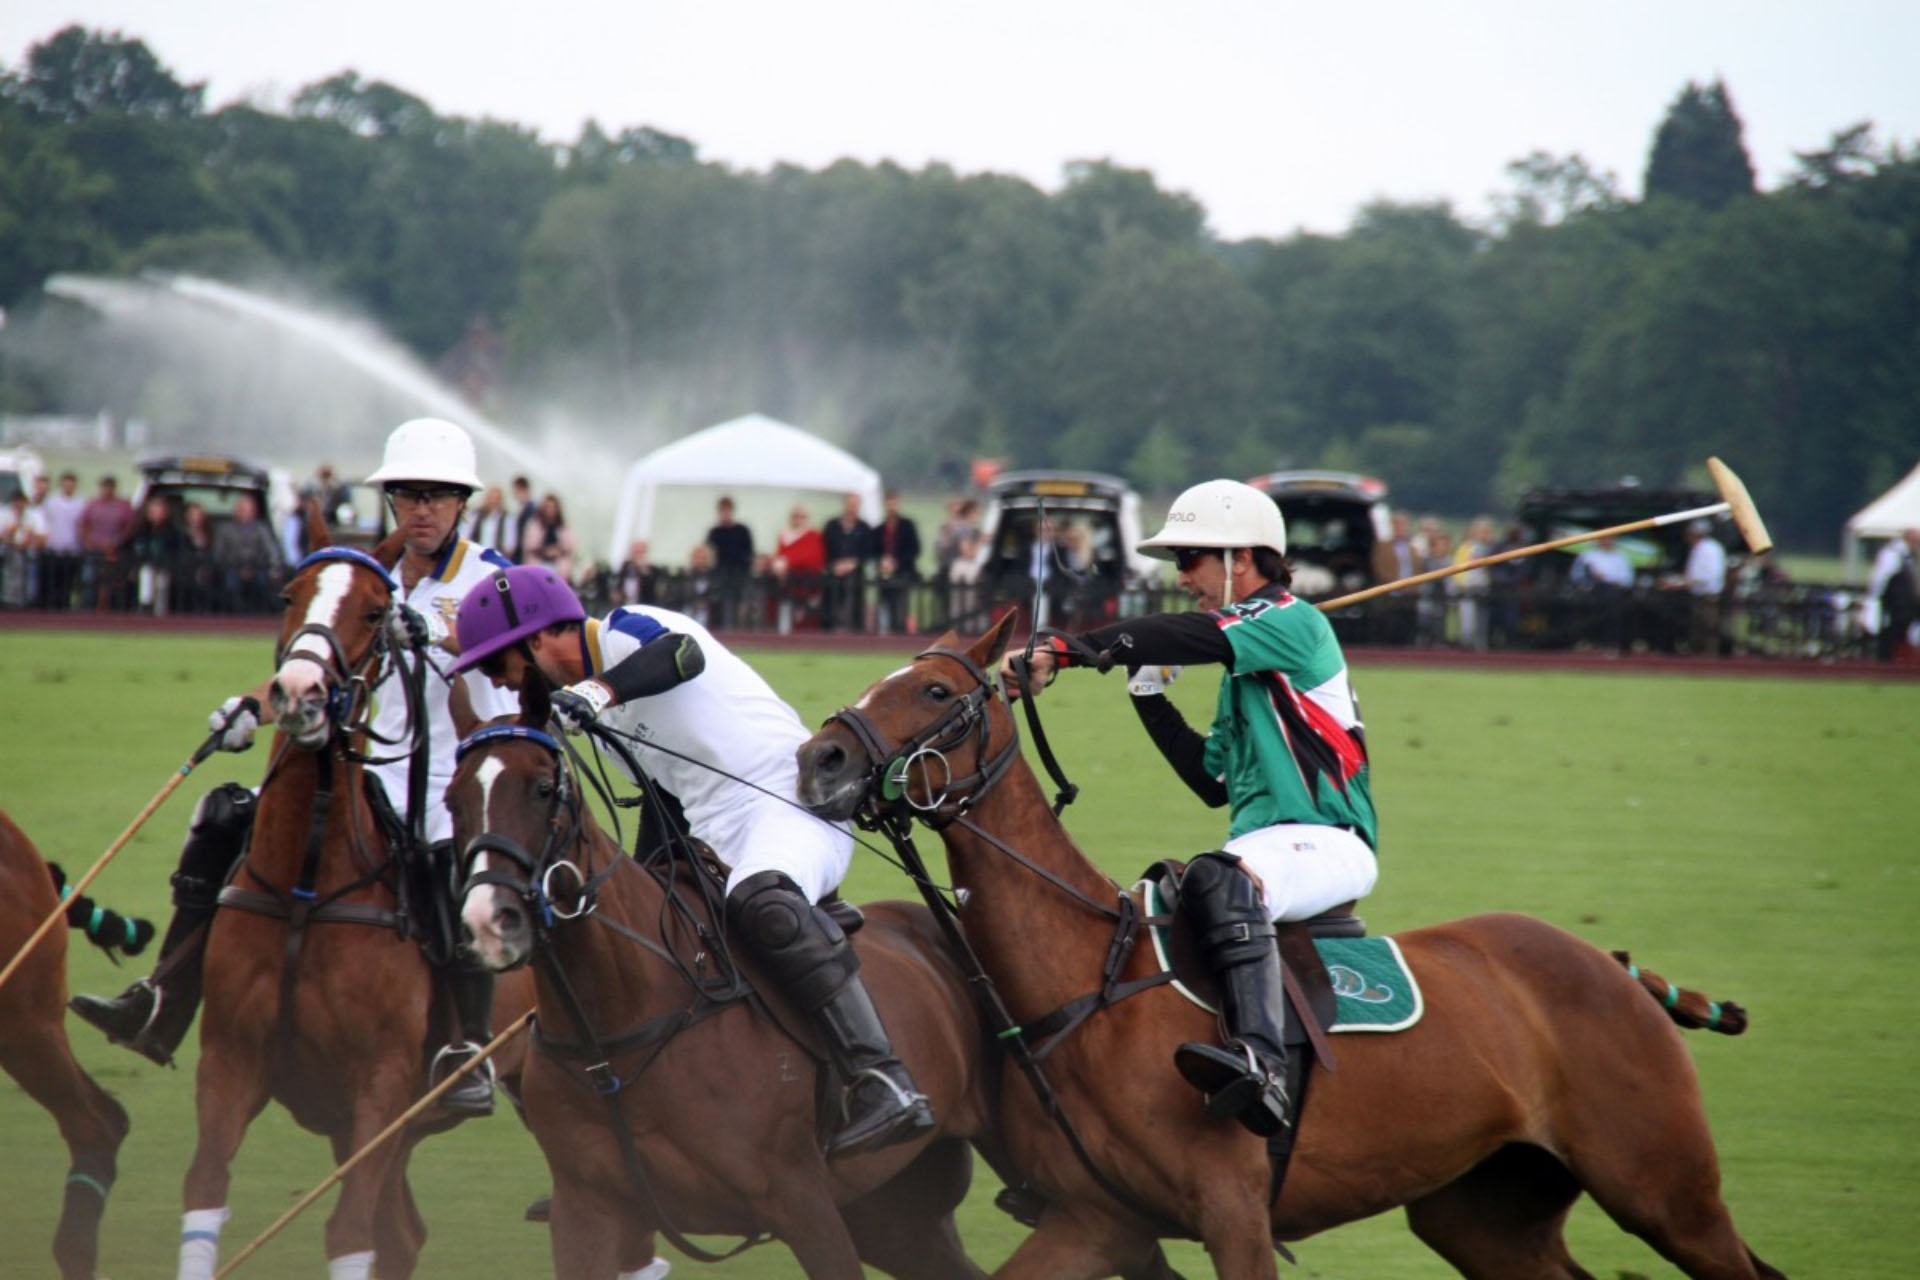 Evolution of Polo in Indonesia